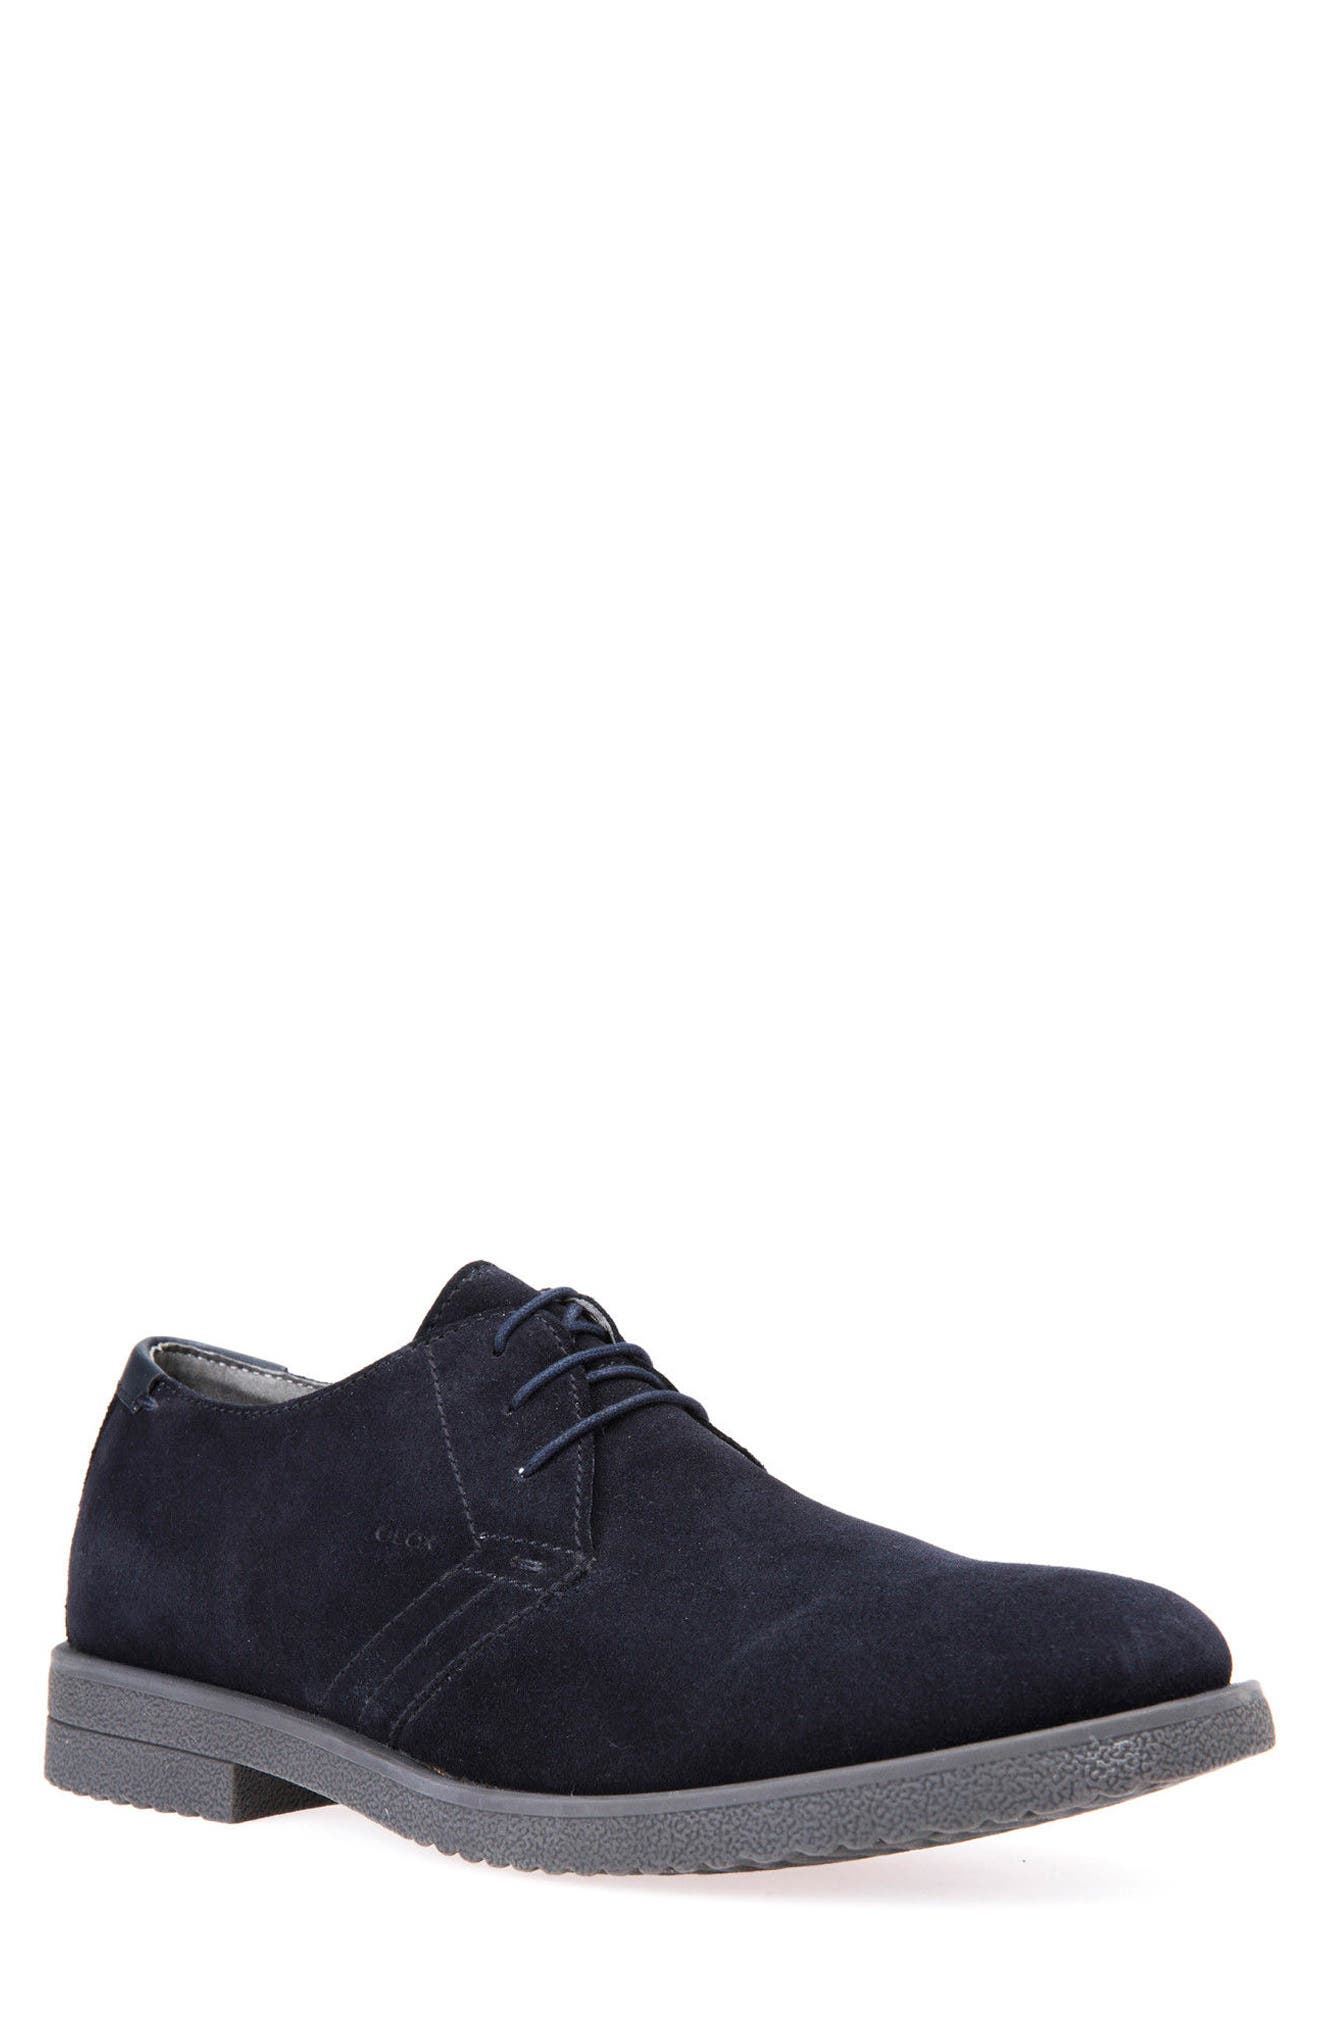 Main Image - Geox Brandled Buck Shoe (Men)